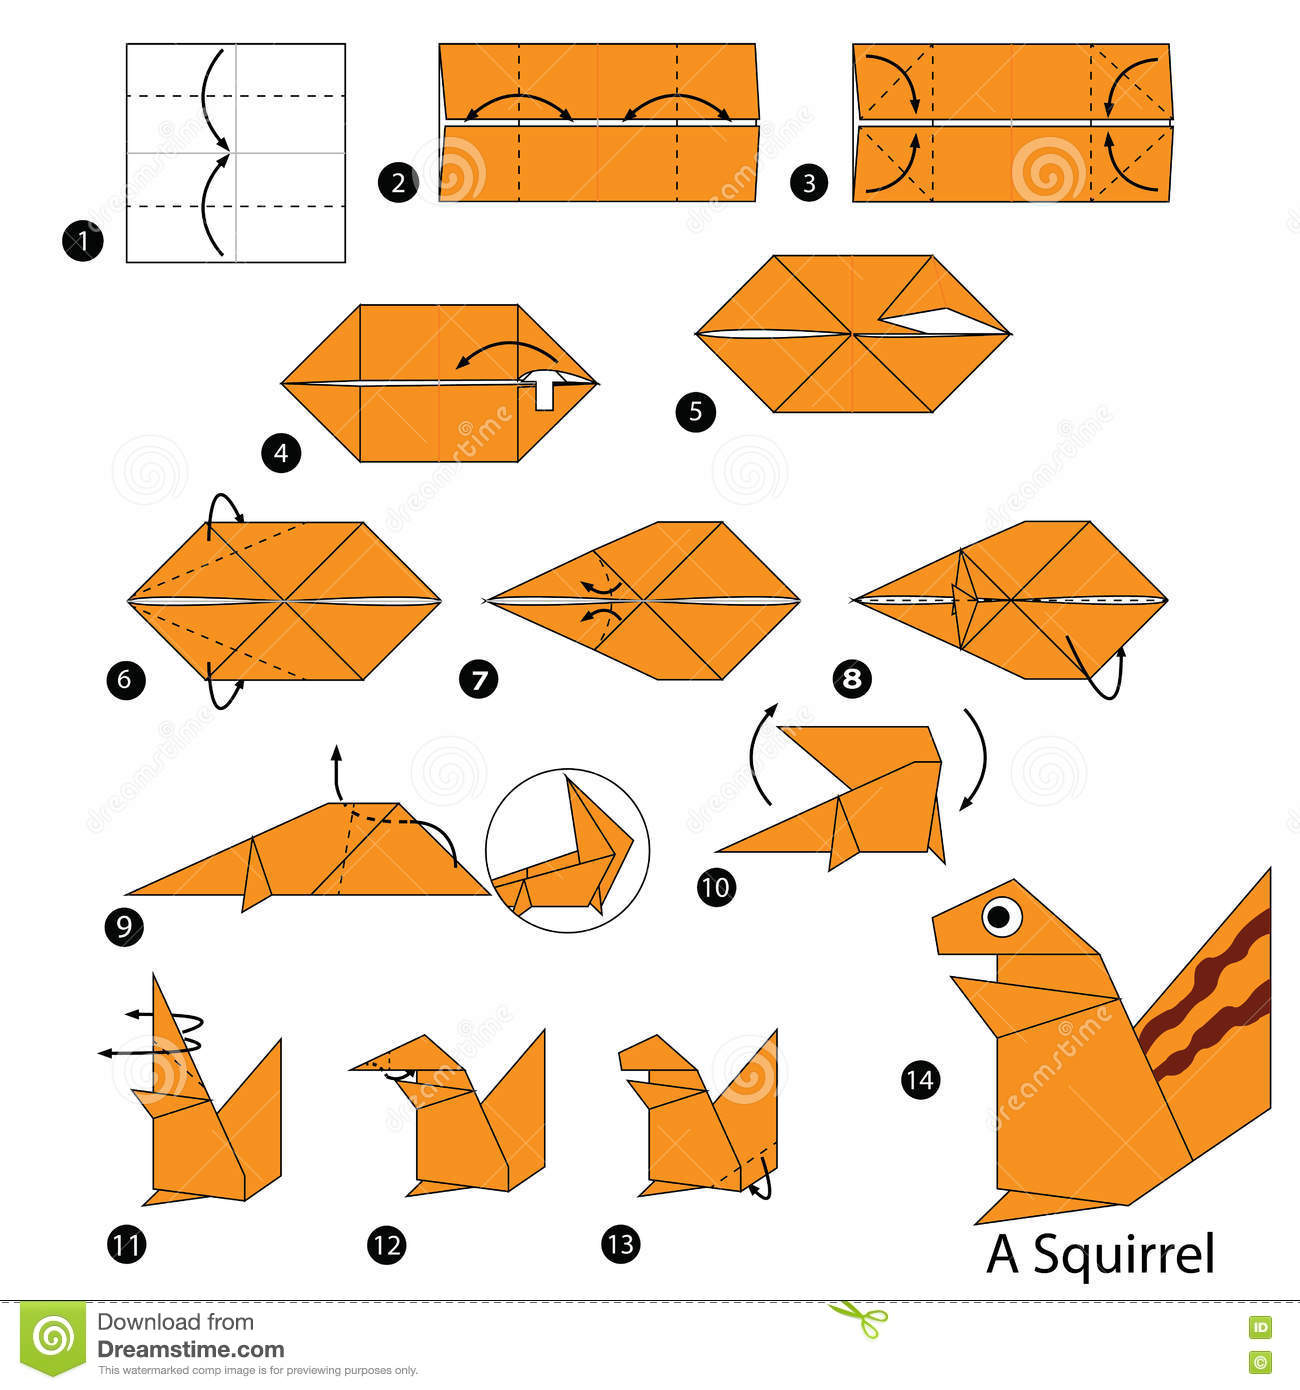 How To Fold Origami Squirrel From The Paper Origami Diagram Of The